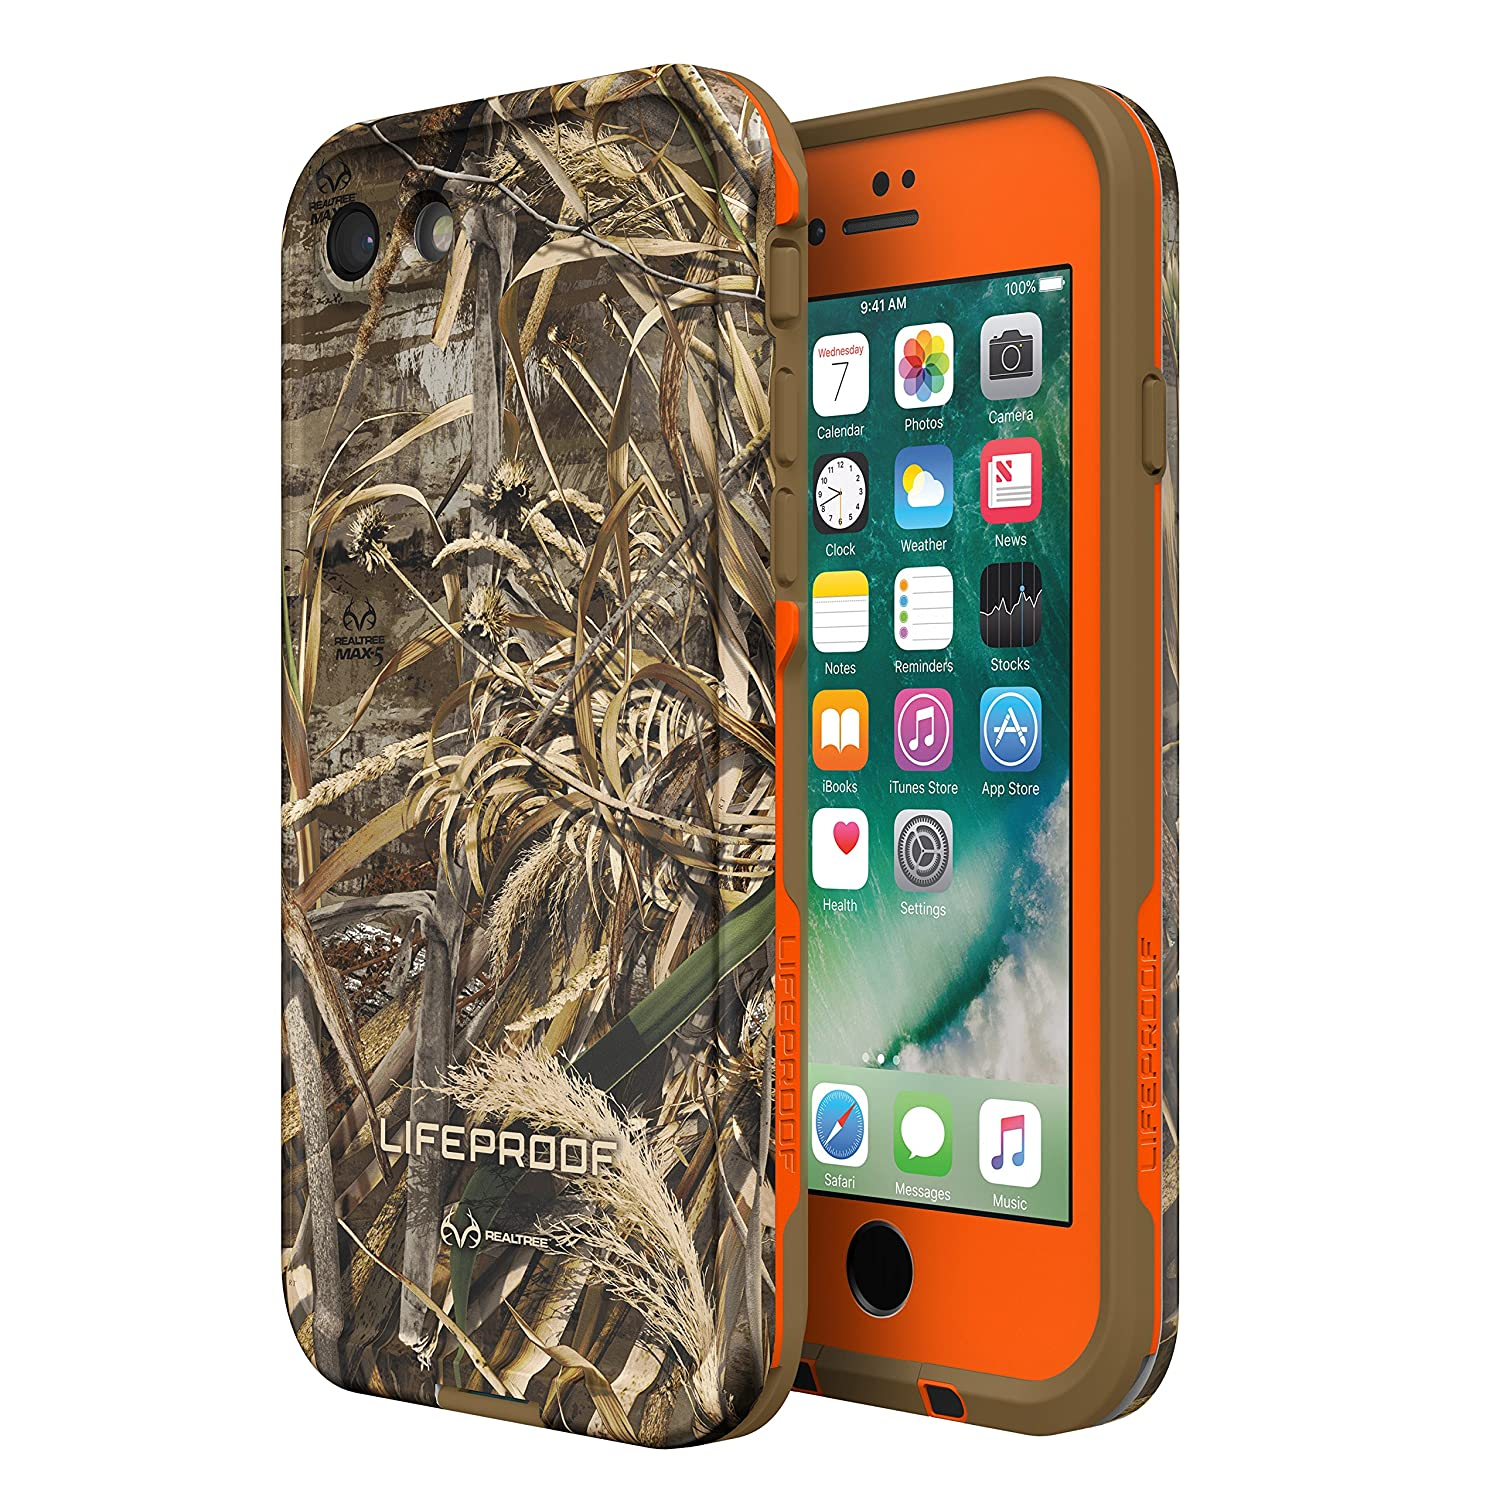 official photos f07b5 45a01 Lifeproof FRĒ SERIES Waterproof Case for iPhone 7 (ONLY) - Retail Packaging  - REALTREE MAX 5 ORANGE (BLAZE ORANGE/DARK FLAT EARTH/MAX5 HD DESIGN)